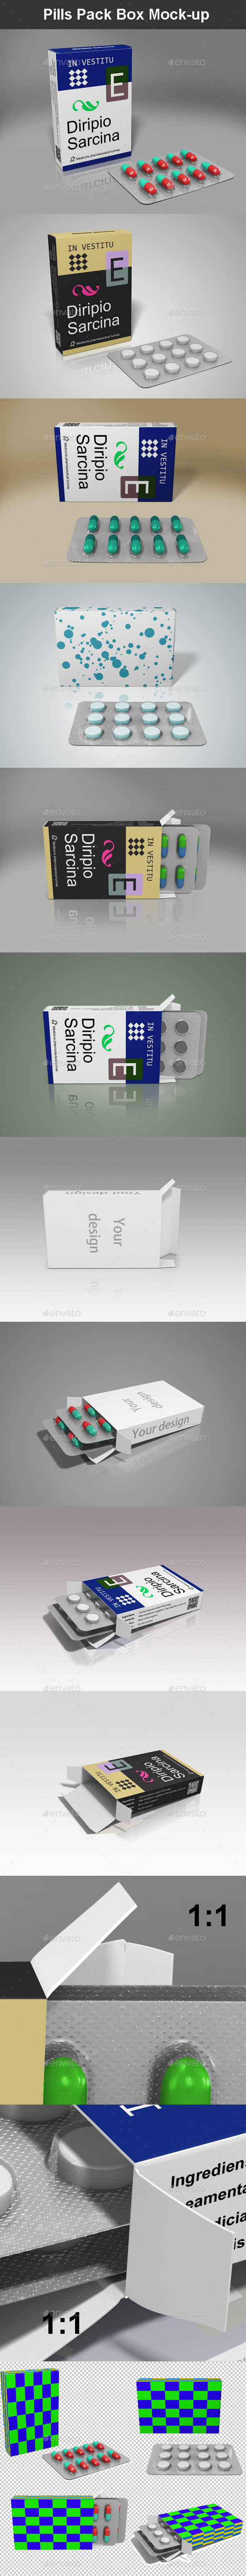 Pills Pack Box Mock-up - Packaging Product Mock-Ups